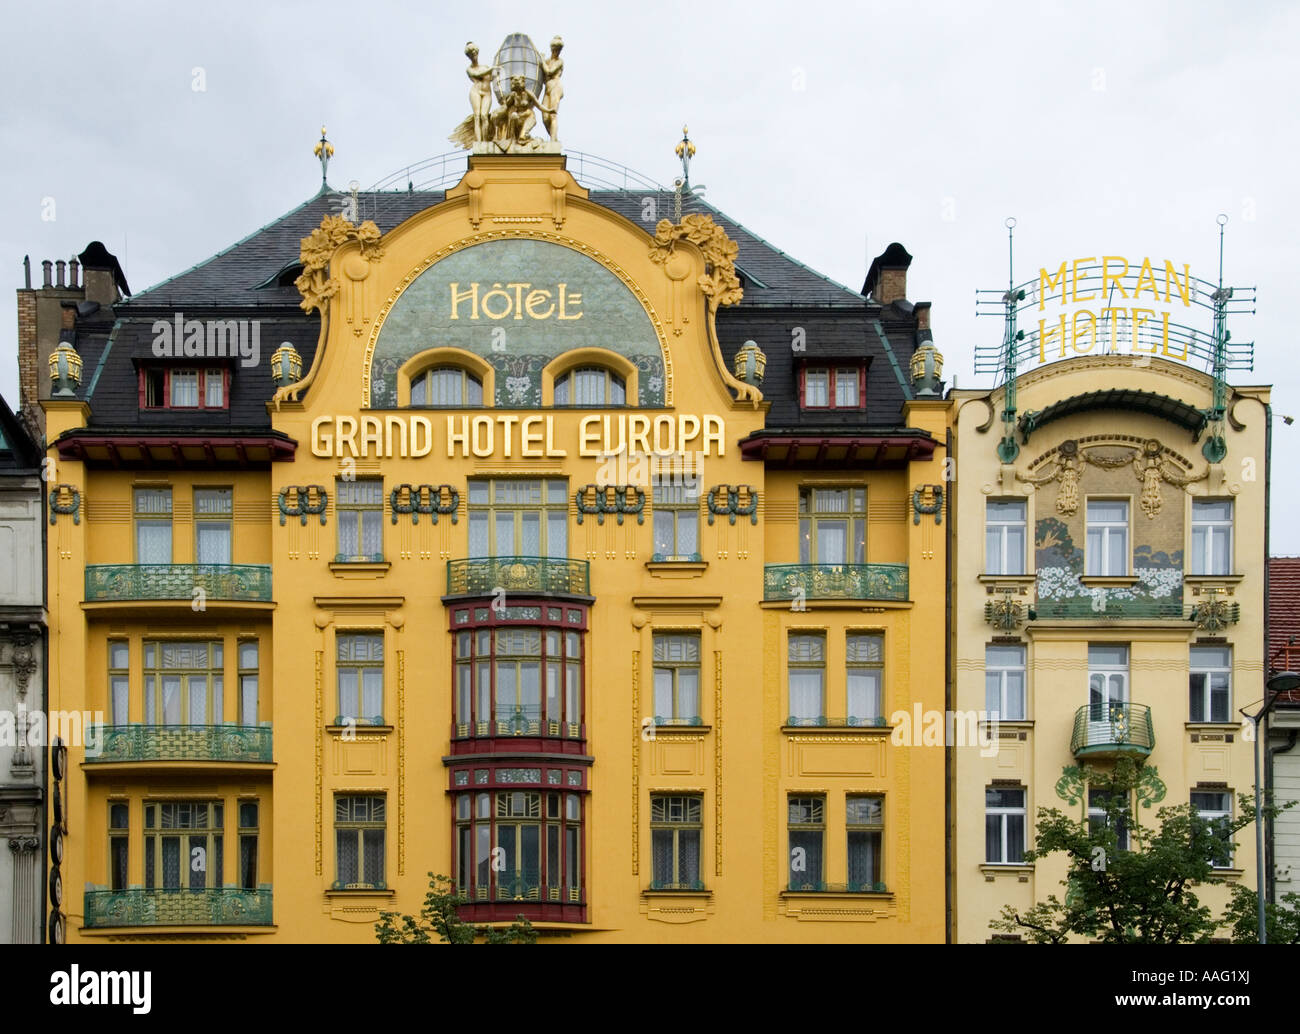 Classics of art nouveau architecture 39 grand hotel europa for Europe hotel prague